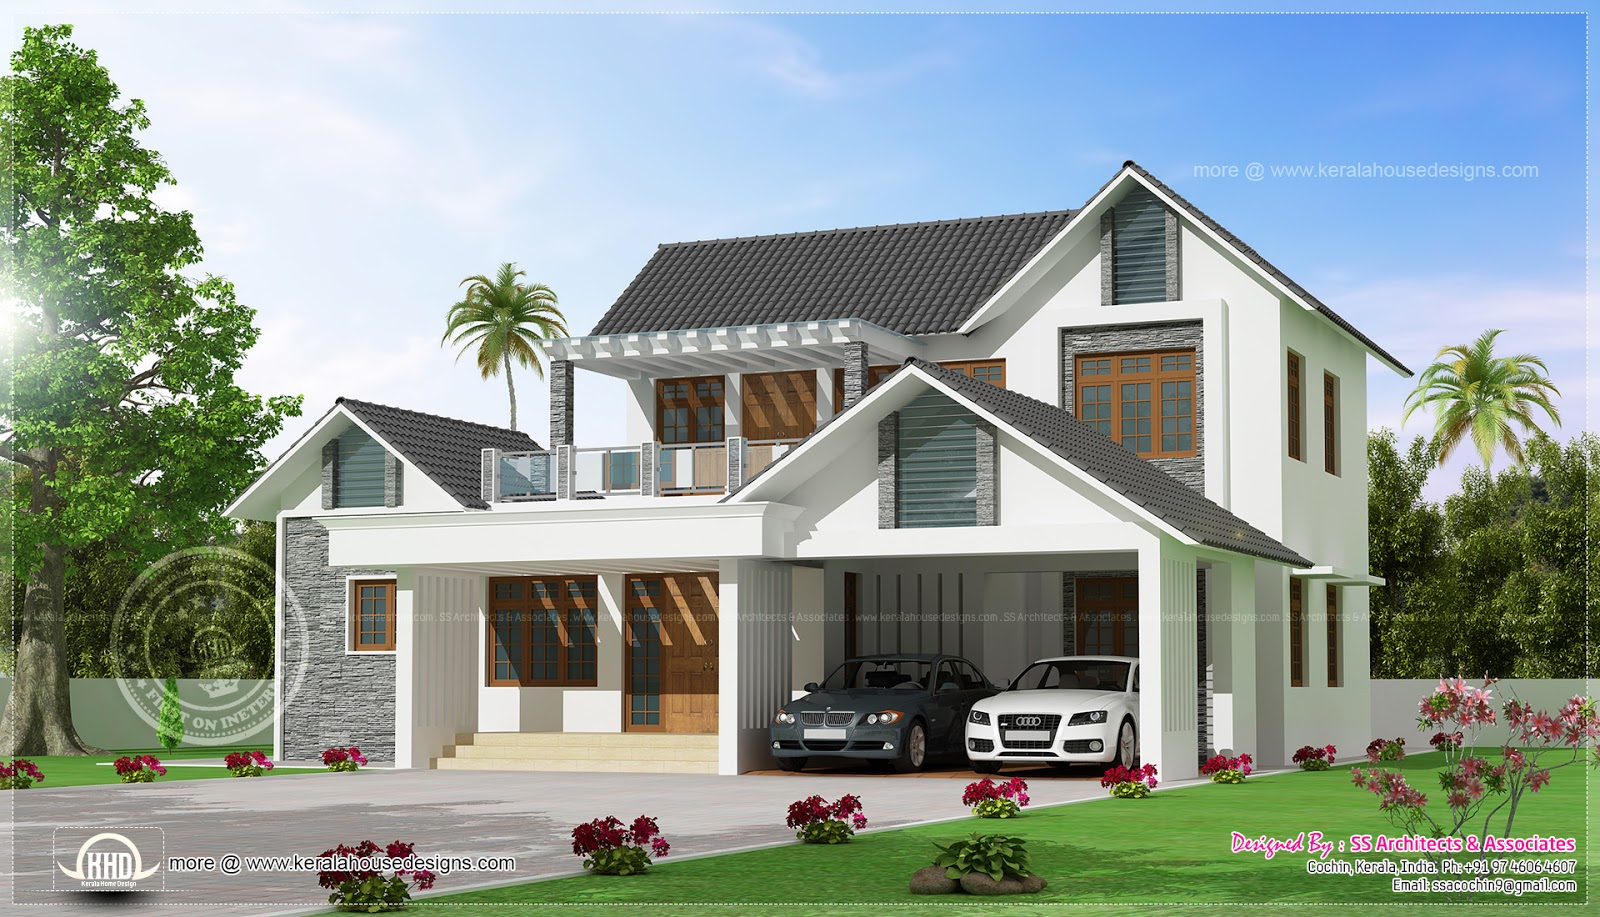 awesome modern villa exterior elevation kerala home design and floor plans. Black Bedroom Furniture Sets. Home Design Ideas